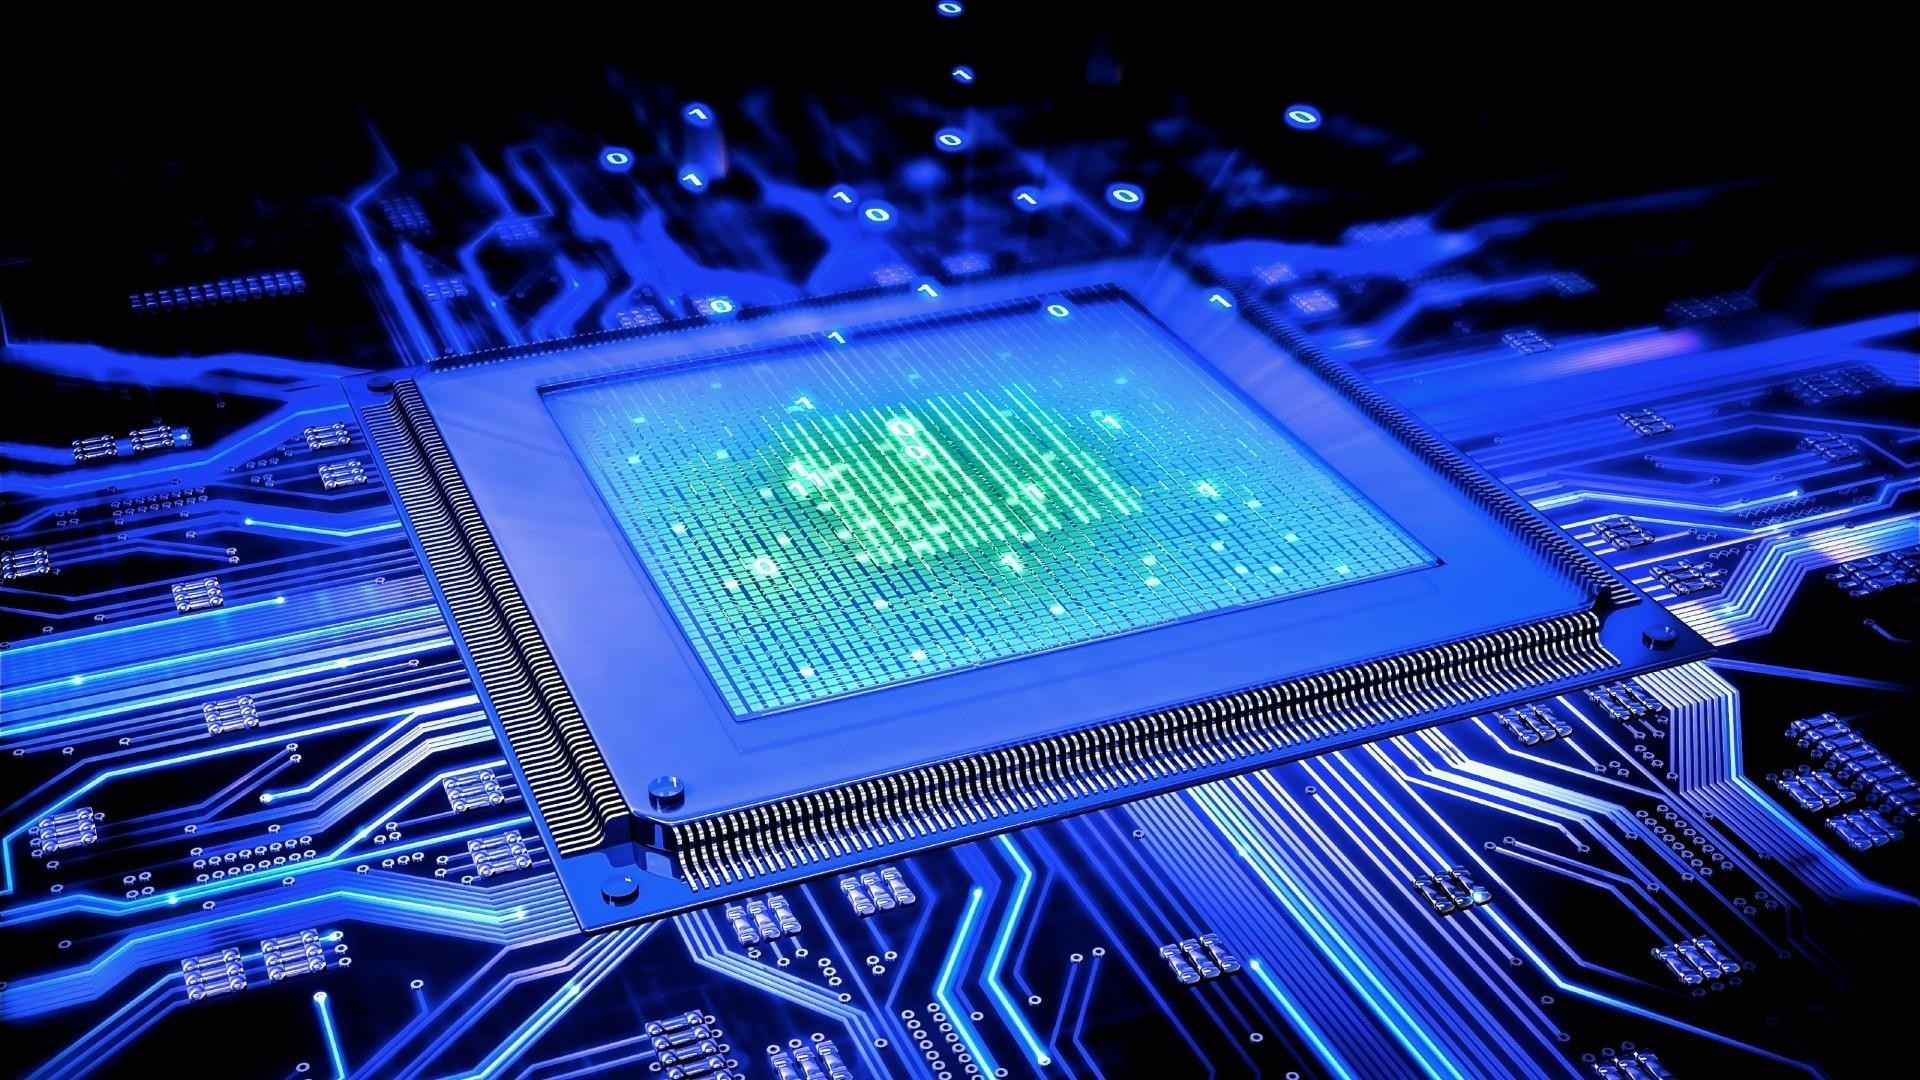 Res: 1920x1080, Microchip Integrated On Motherboard Wallpaper | Wallpaper Studio 10 | Tens  of thousands HD and UltraHD wallpapers for Android, Windows and Xbox